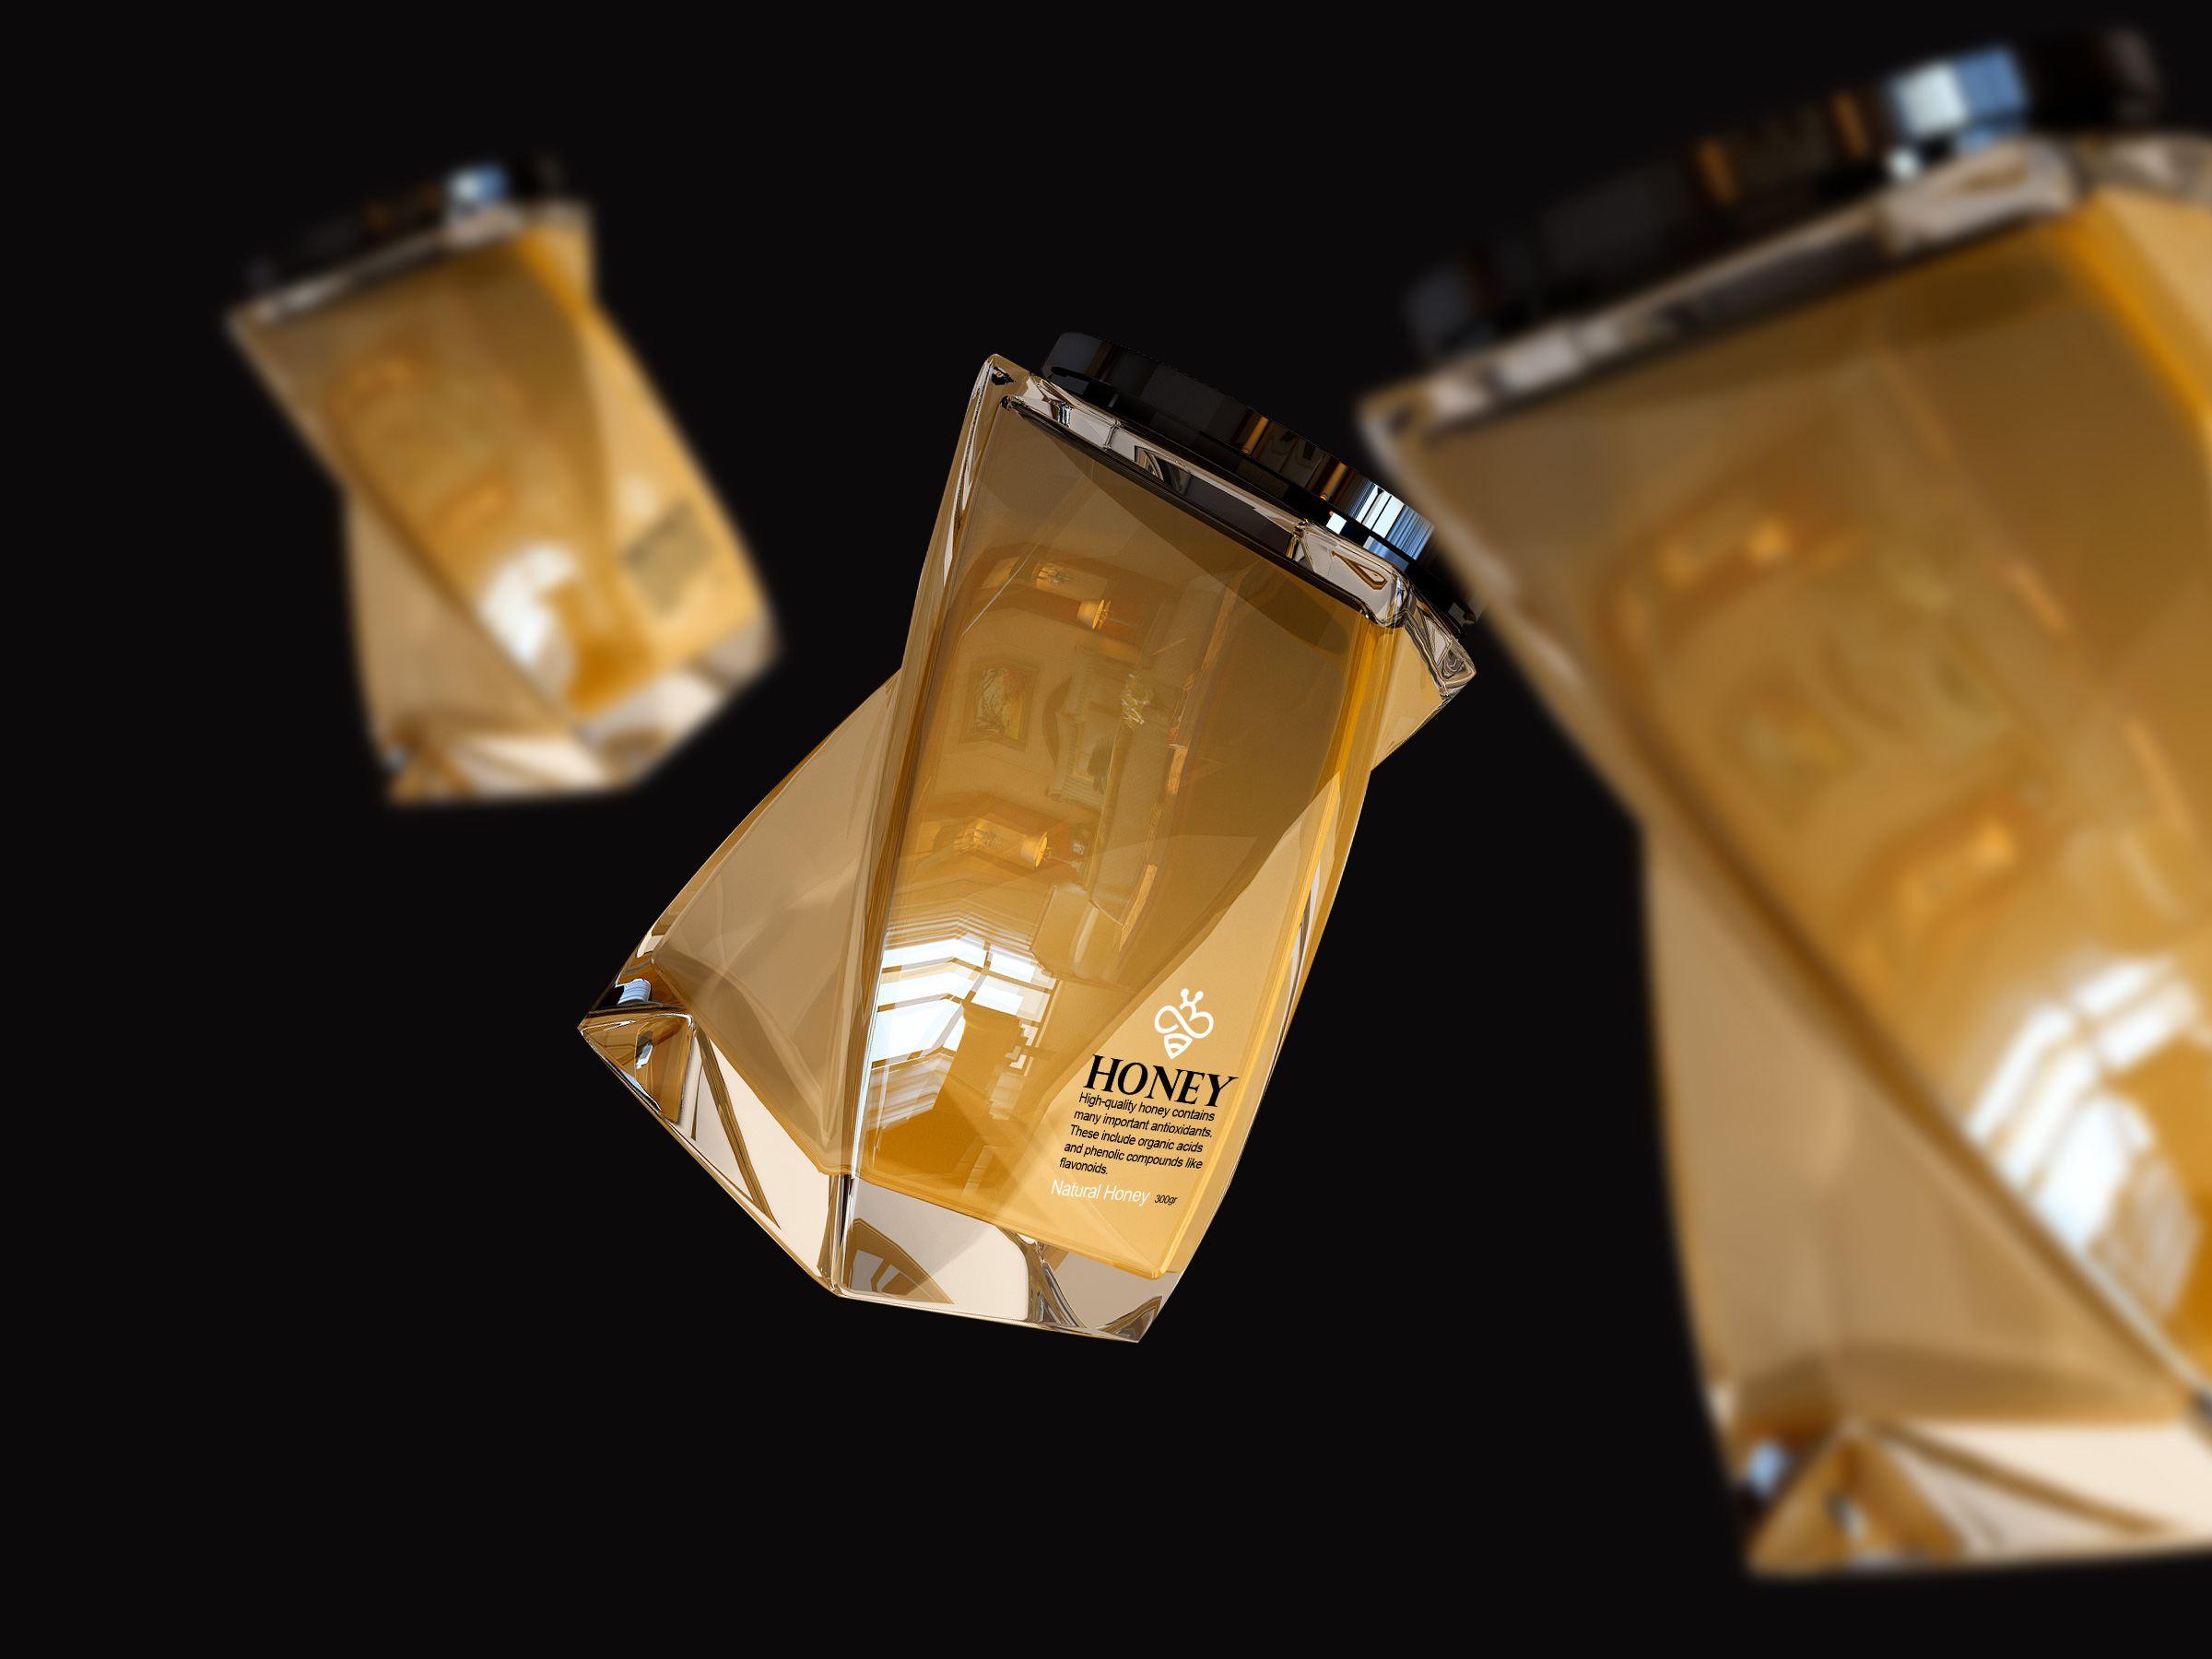 Taha Fakouri - Honey Packaging6.jpg